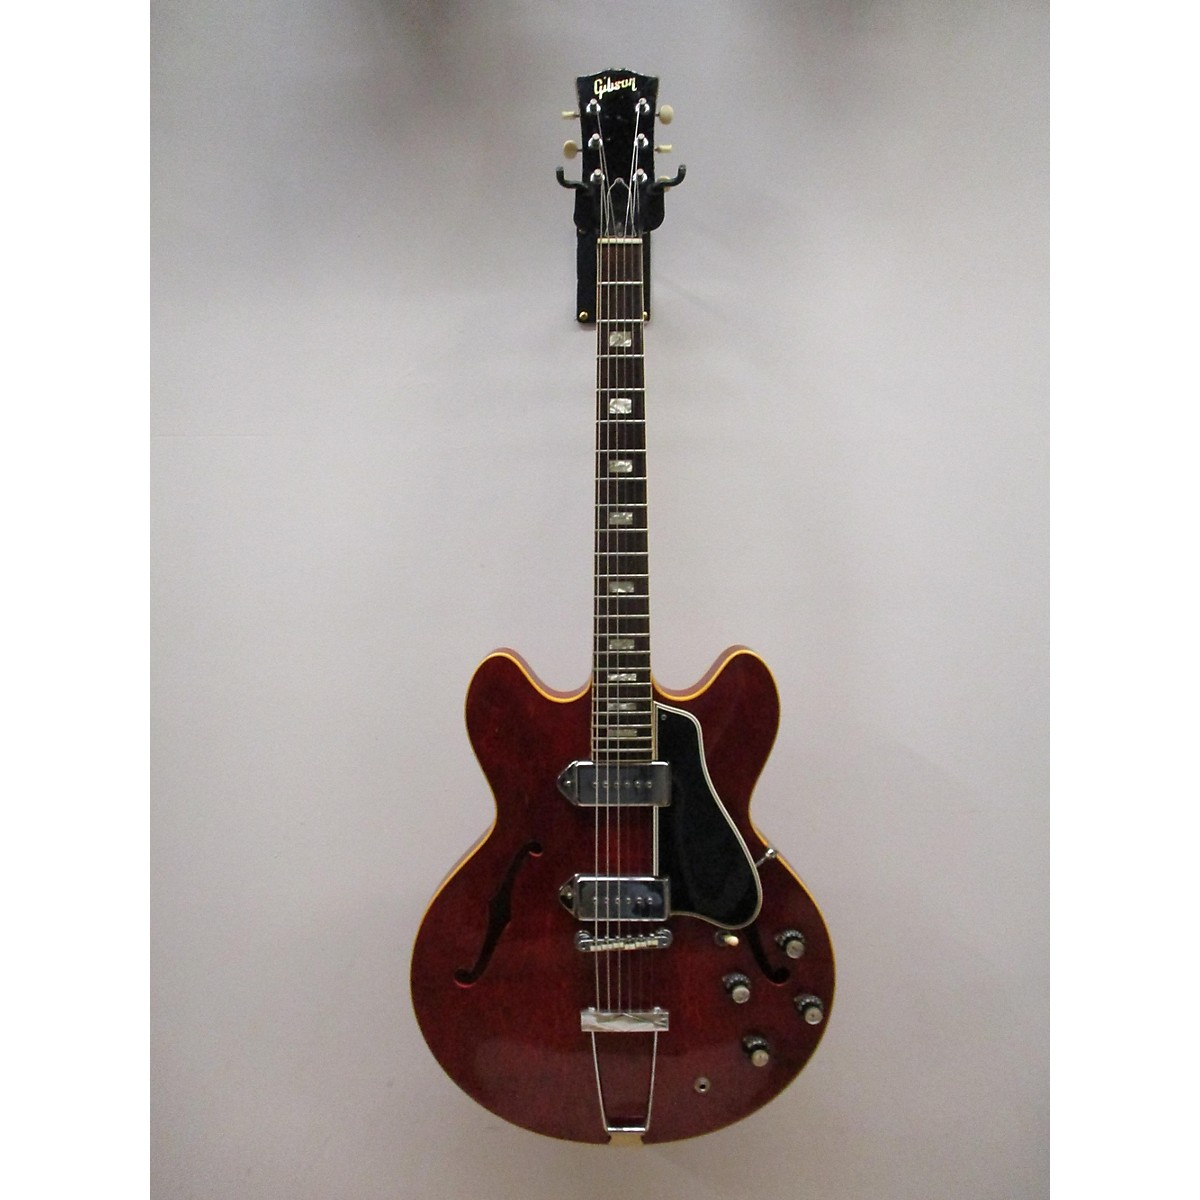 Gibson 1969 ES-330 TDC OHSC Hollow Body Electric Guitar